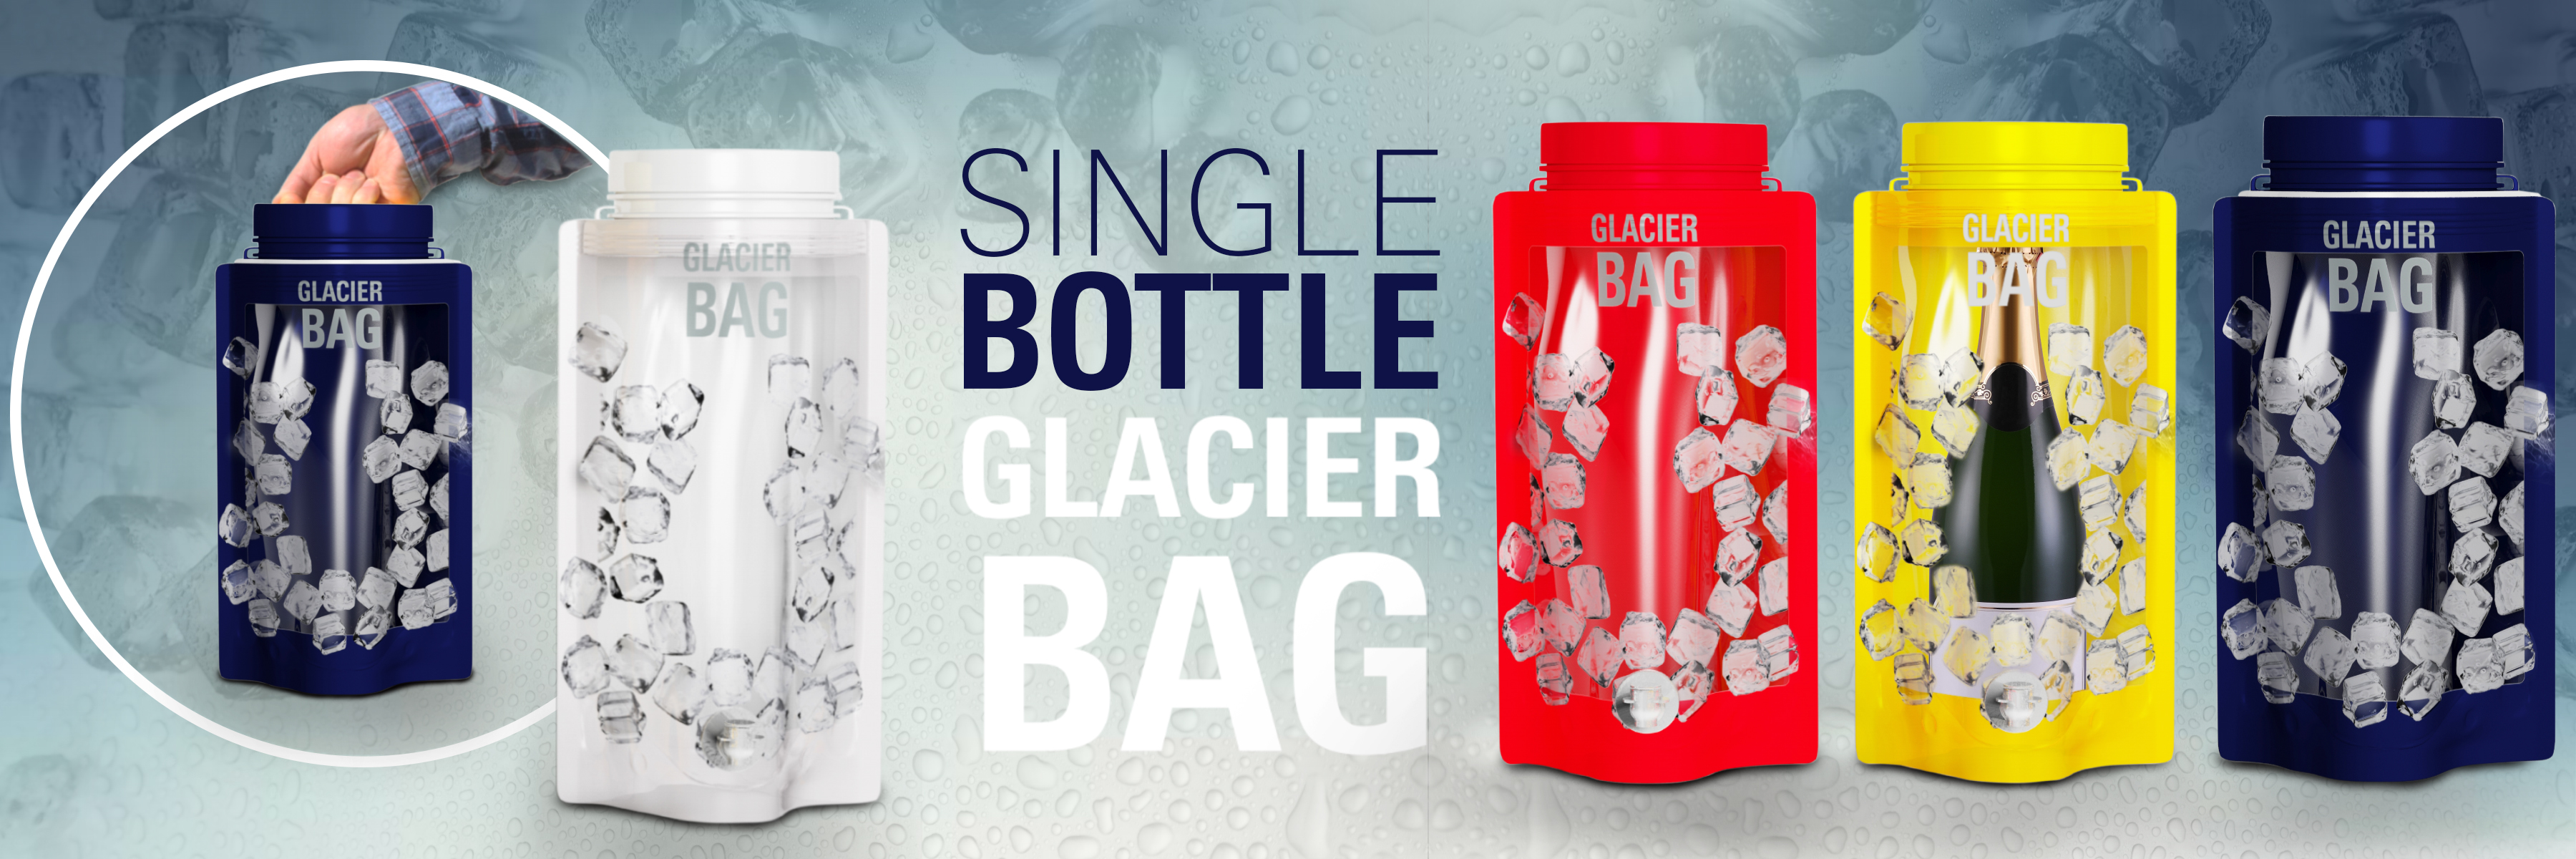 single glacier bag